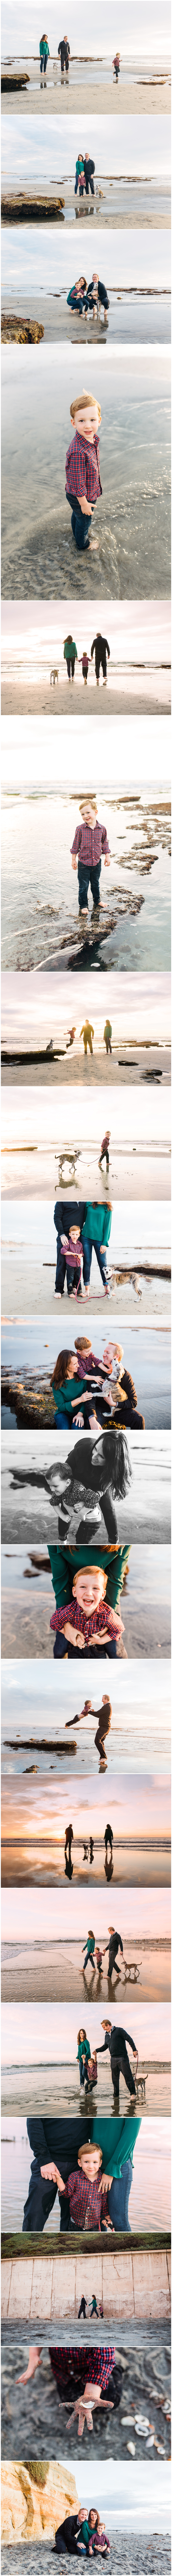 Chrissy Walther is a San Diego Family Photographer residing in Vista, CA. She specializes in all things family, motherhood, and the decisive moment. Contact her today to book you maternity, fresh 48, newborn, or family shoot!